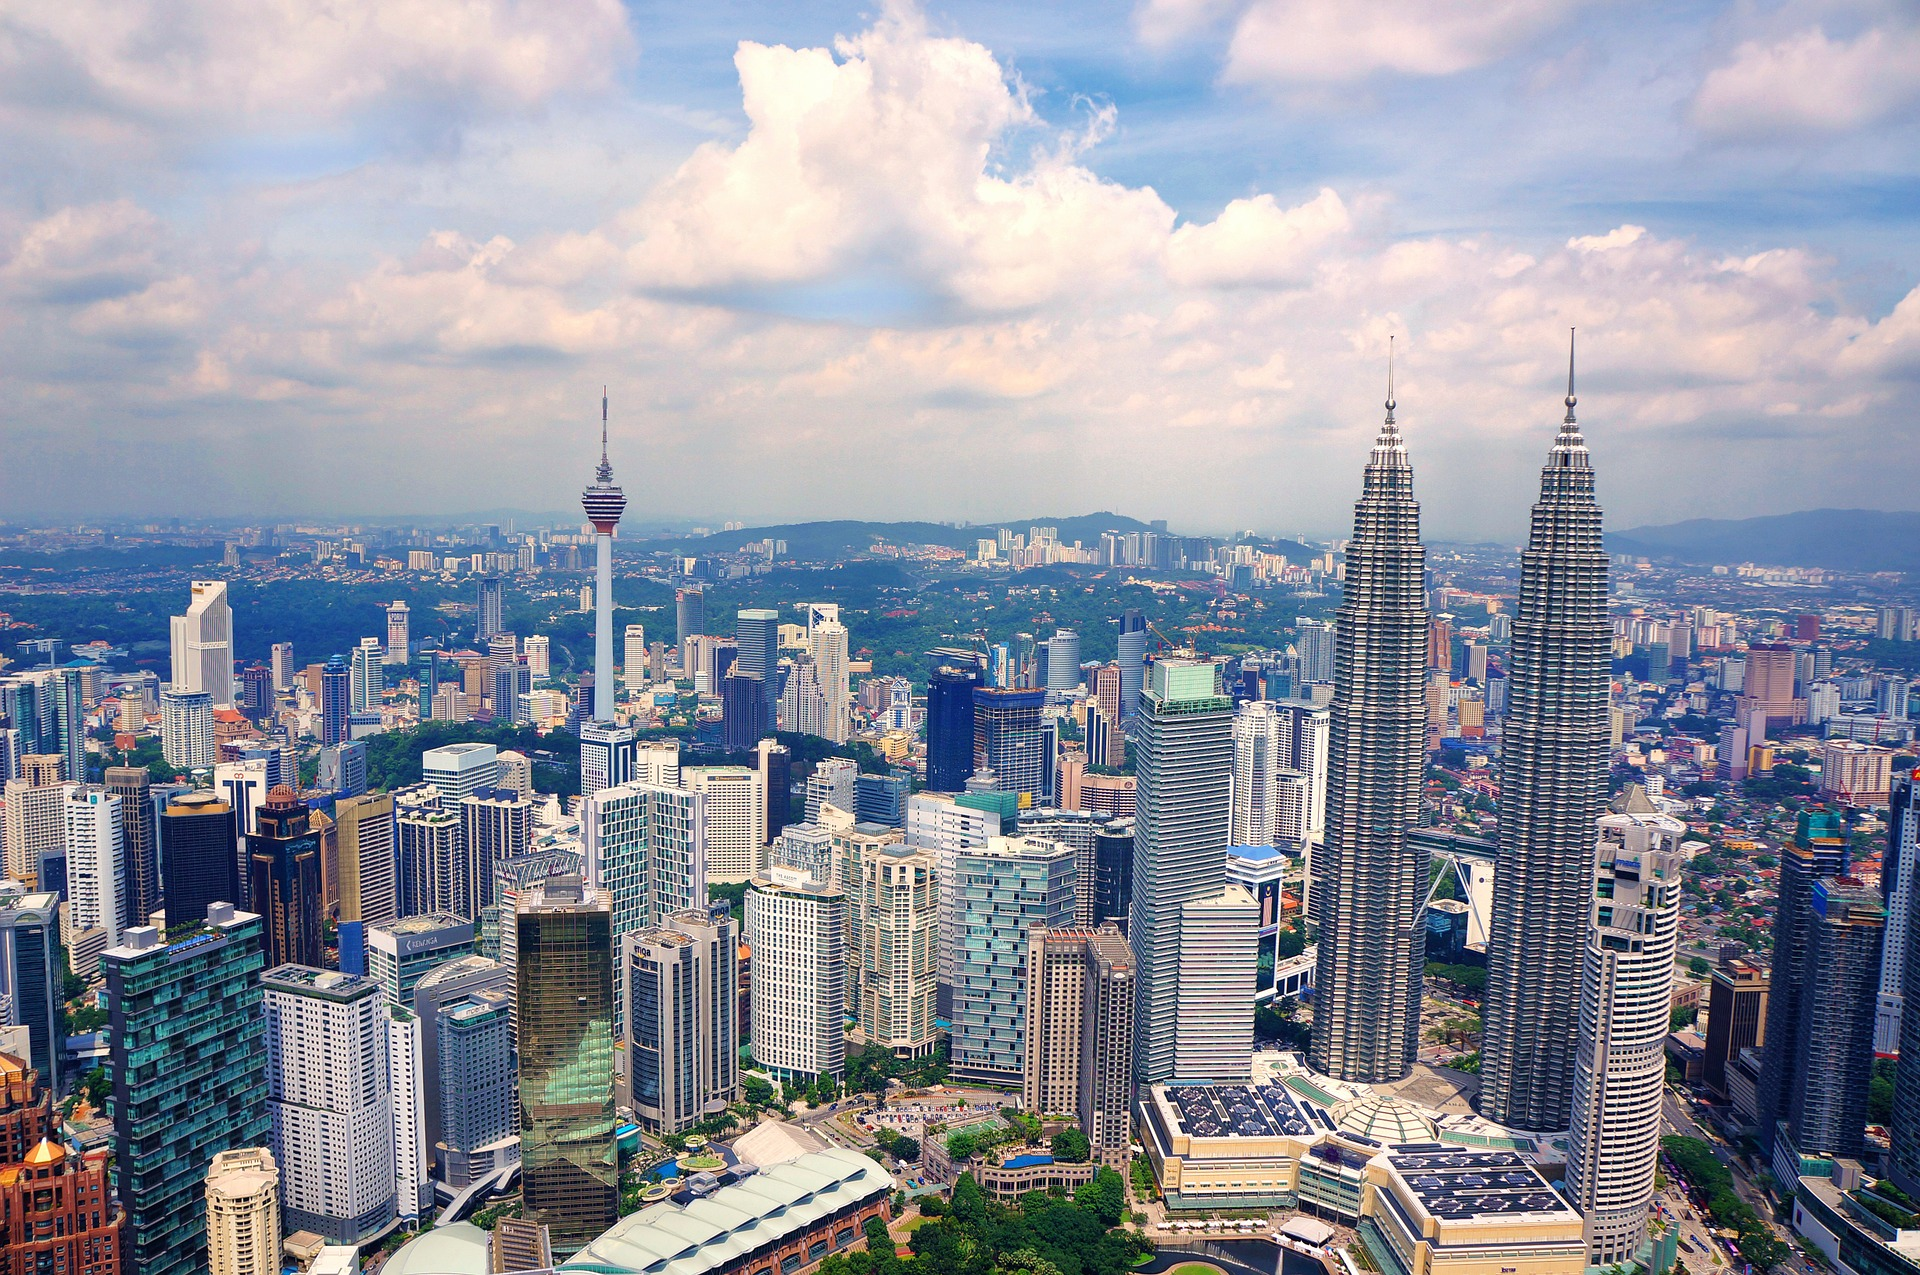 Image of the skyline of Malaysia